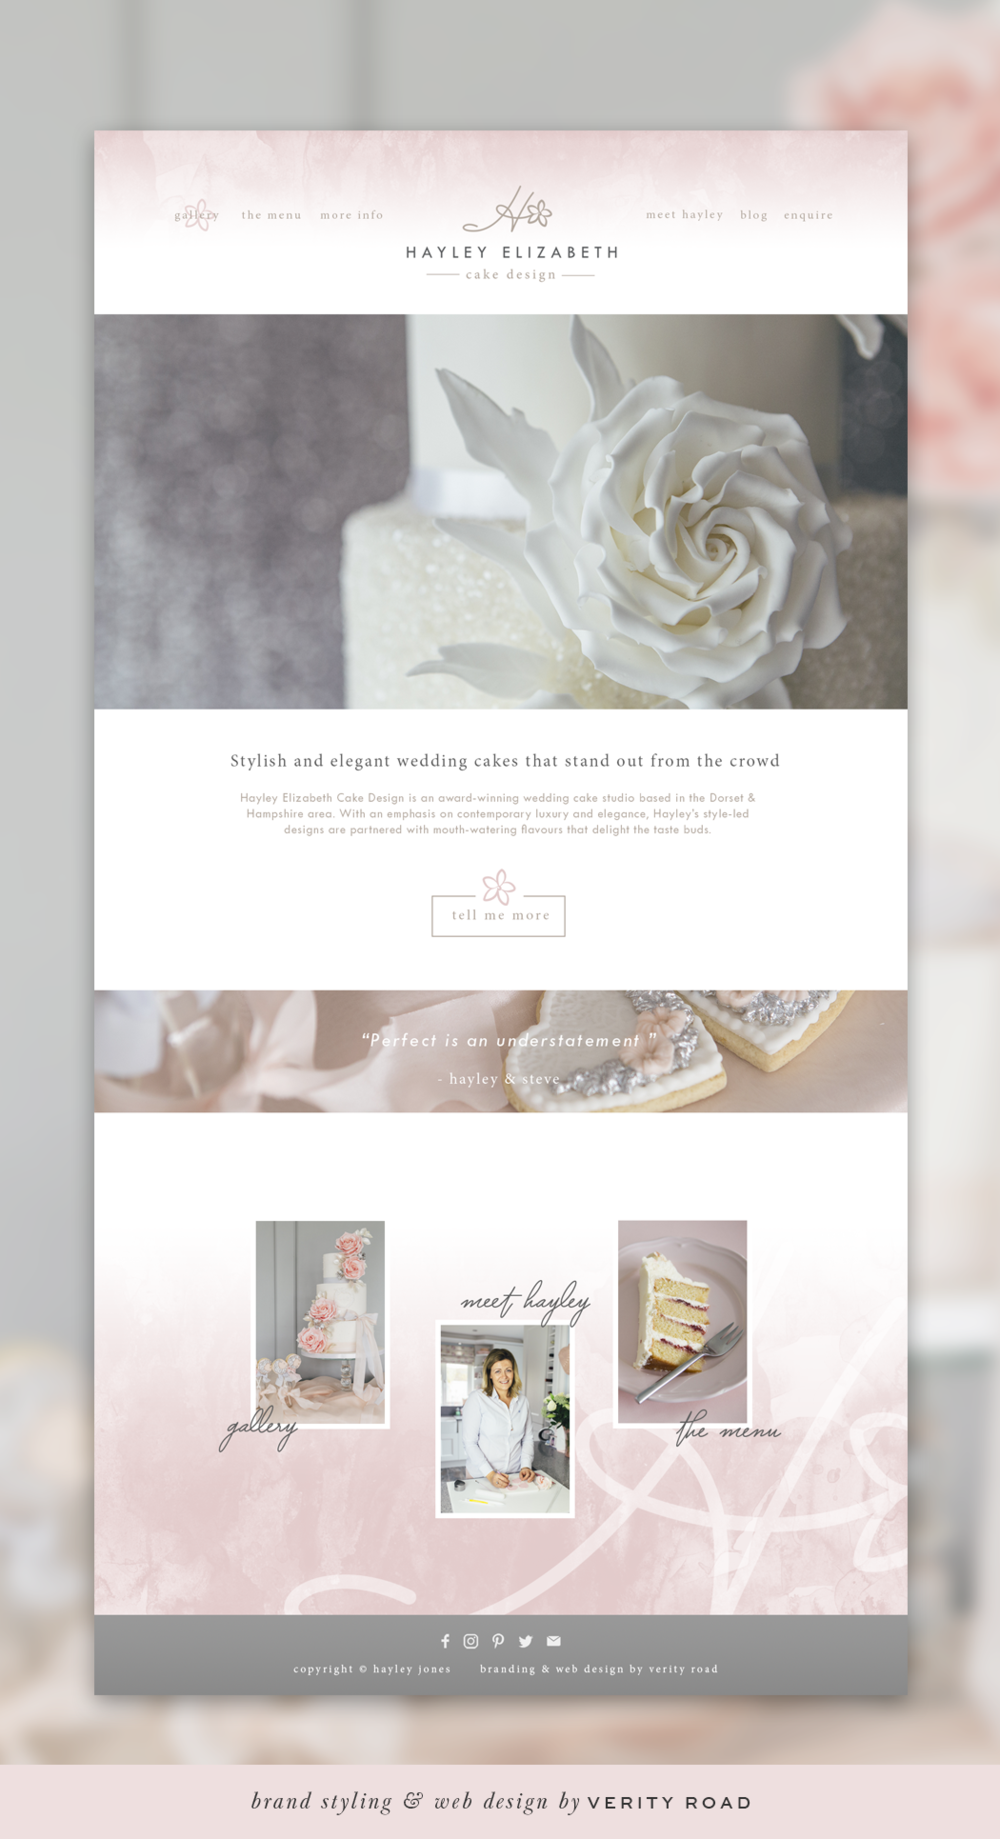 Custom web design and branding of Hayley Elizabeth Cake Design by Verity Road. Feminine branding, feminine web design, luxury branding, luxury web design, website design, female entrepreneur, wedding professional, wedding business branding. Logo design, brand elements, feminine color palette, patterns and textures, HOME PAGE.